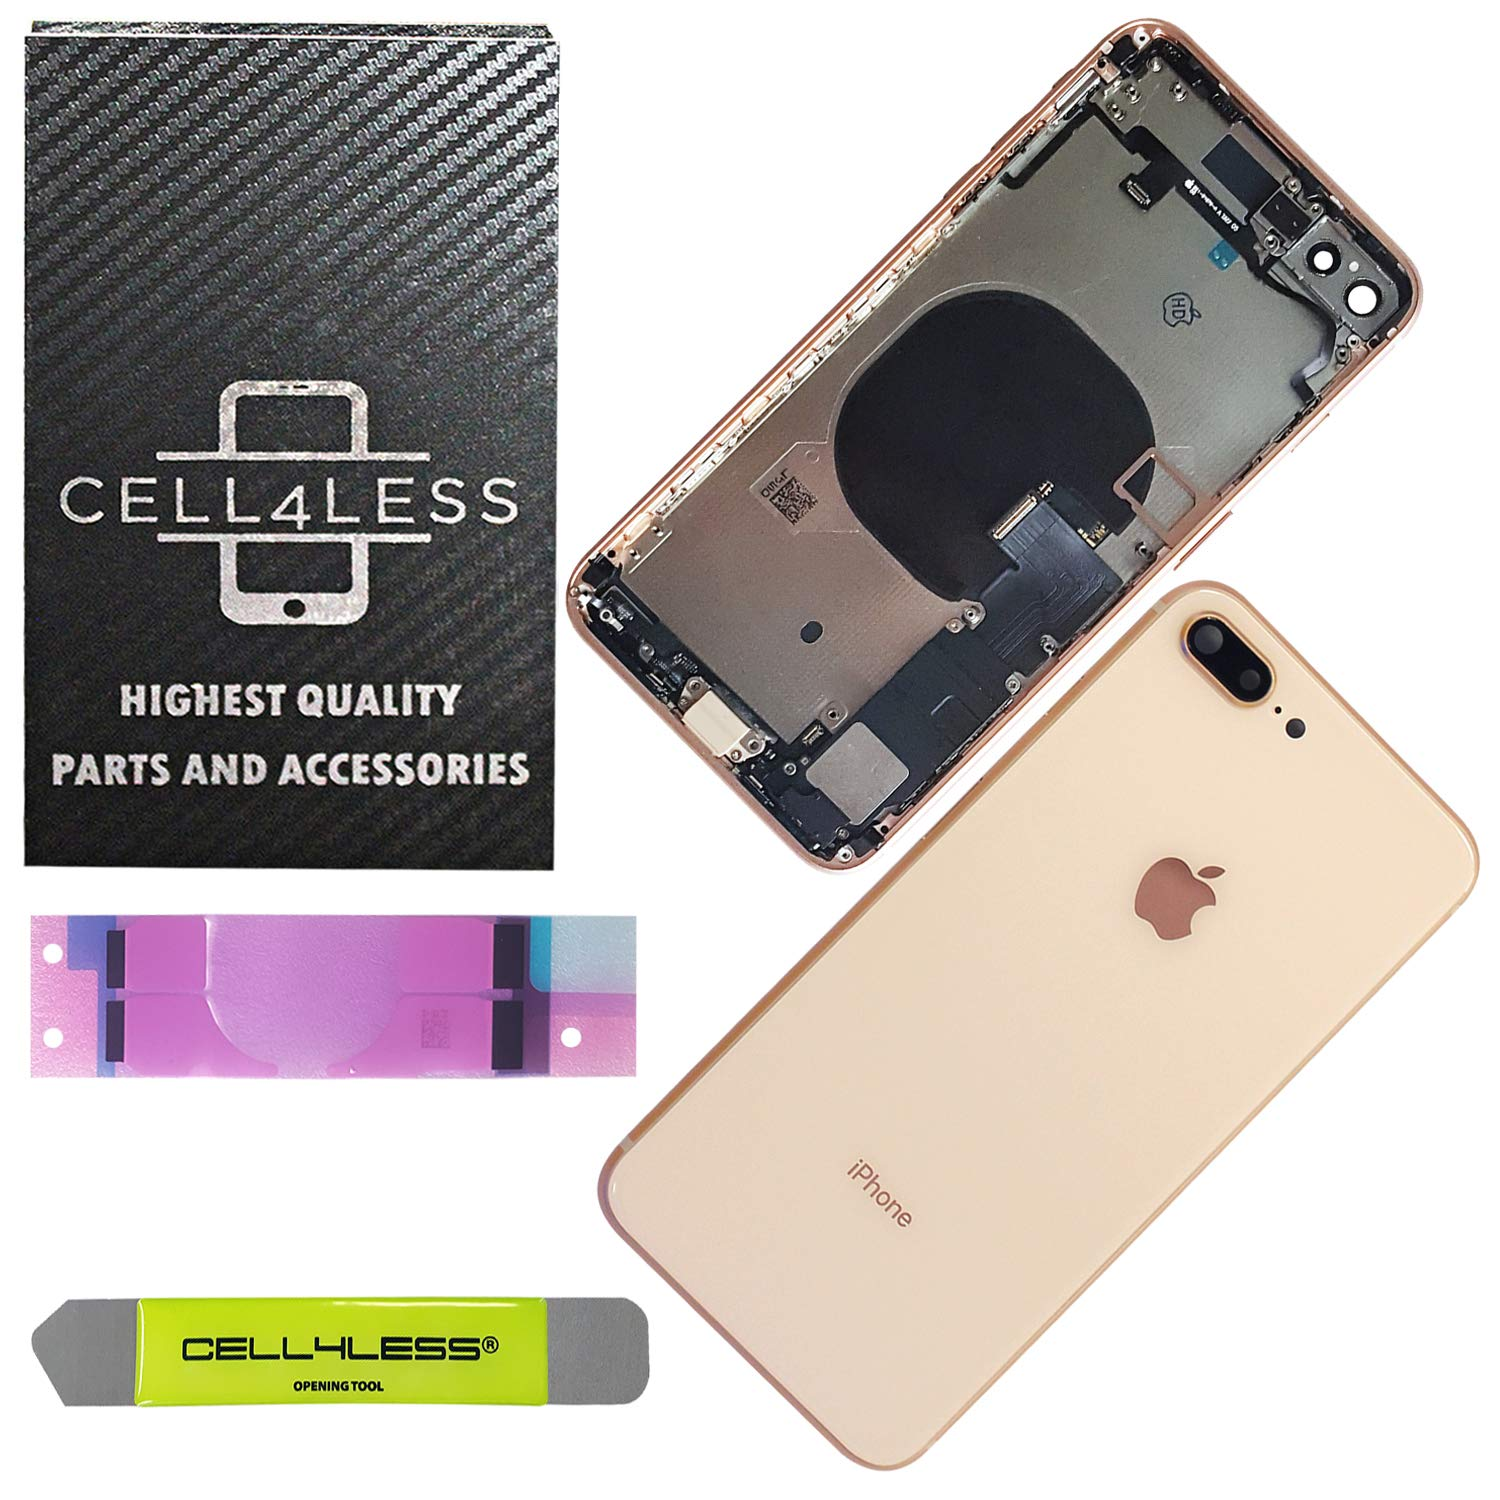 CELL4LESS Back Housing Assembly Metal MidFrame w/Major Components Pre-Installed Including Buttons for iPhone 8 Plus (Gold) by Cell4Less